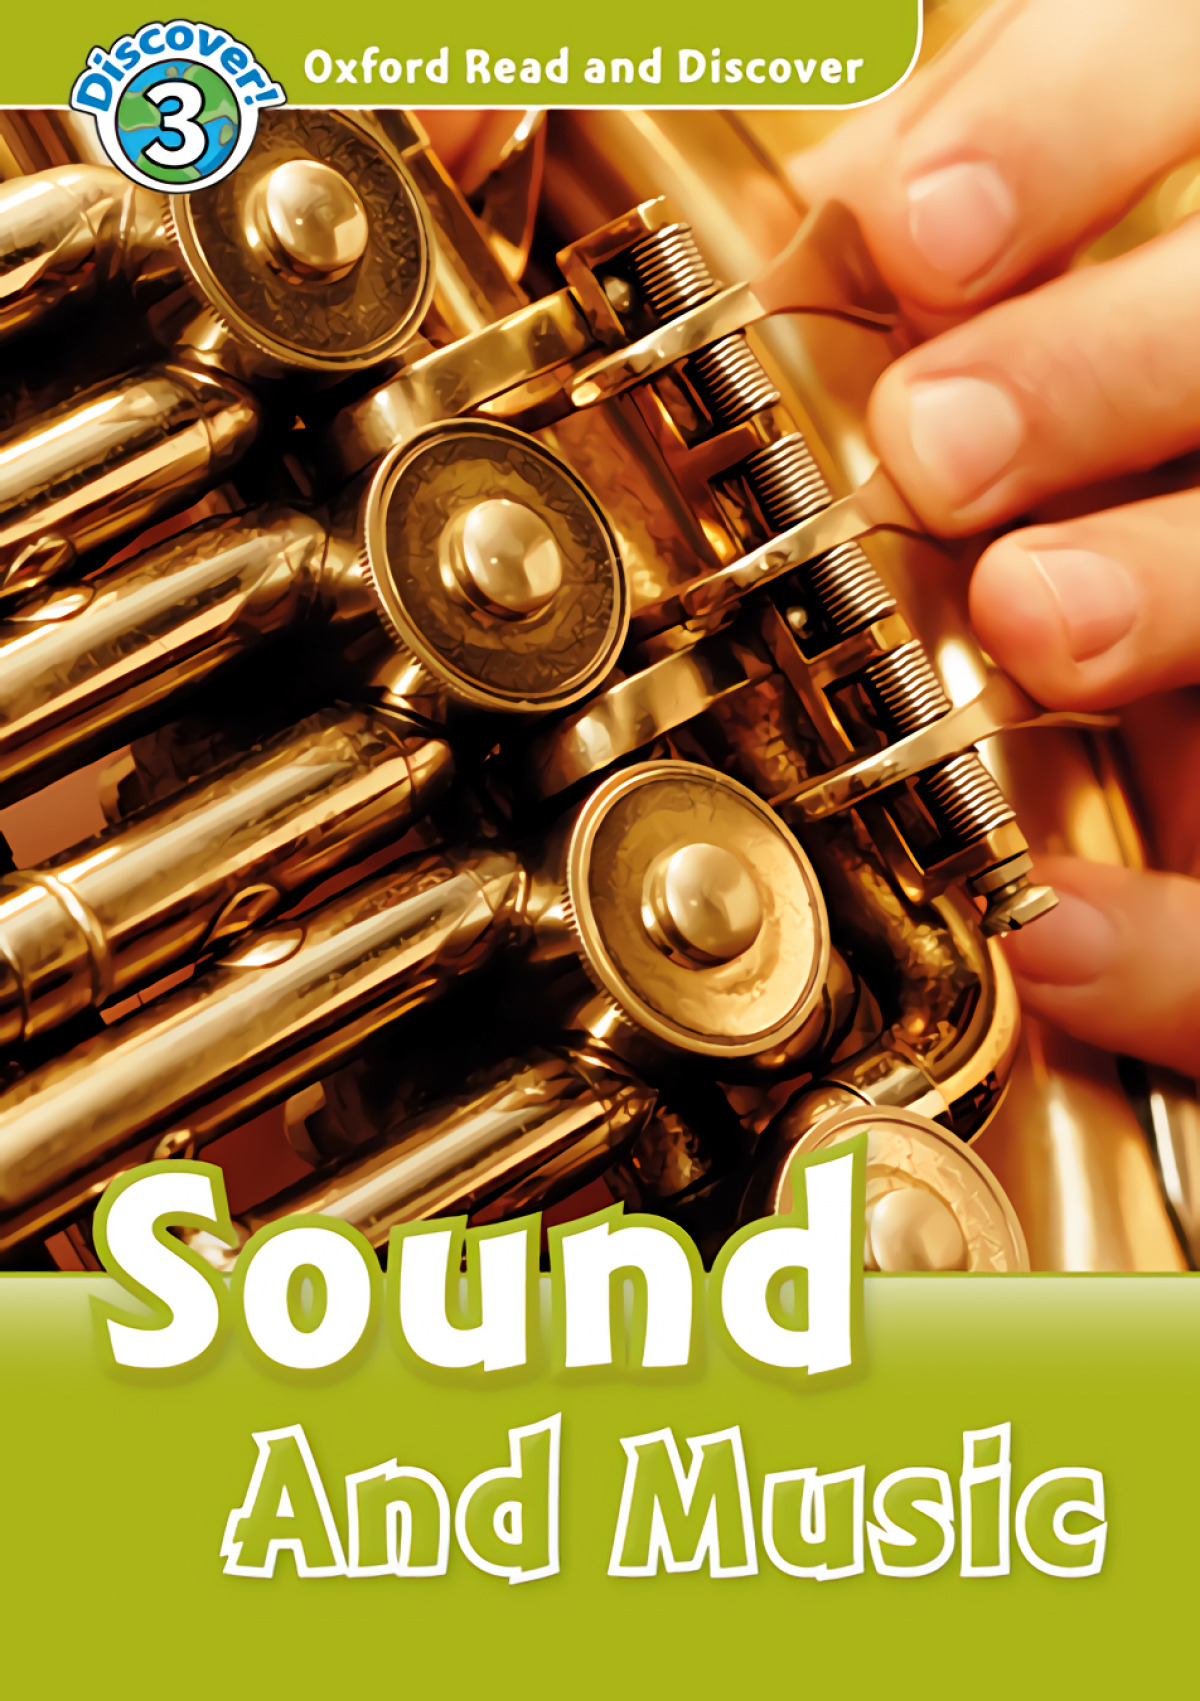 Oxford Read and Discover 3. Sound and Music MP3 Pack